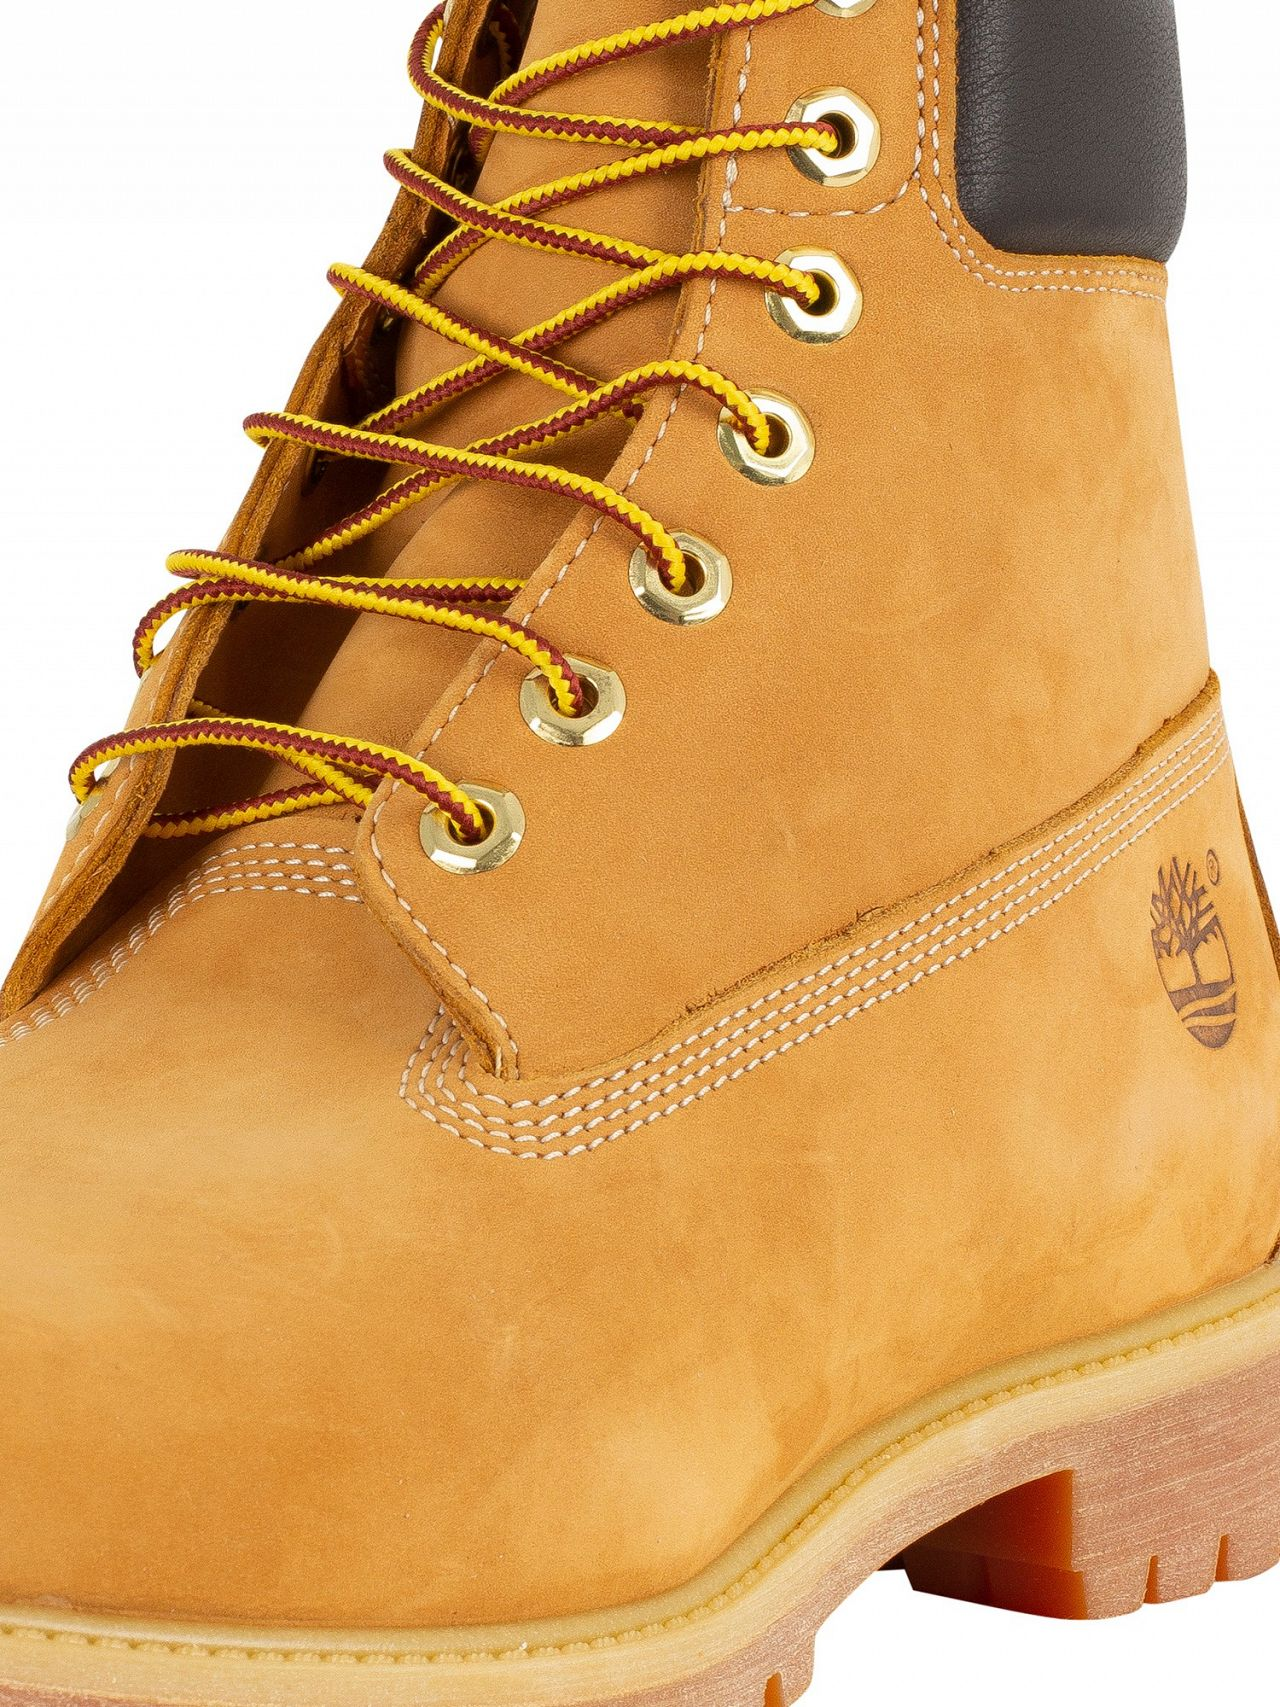 293aabbc4486 Timberland Wheat Yellow AF 6 Inch Premium BT Boots